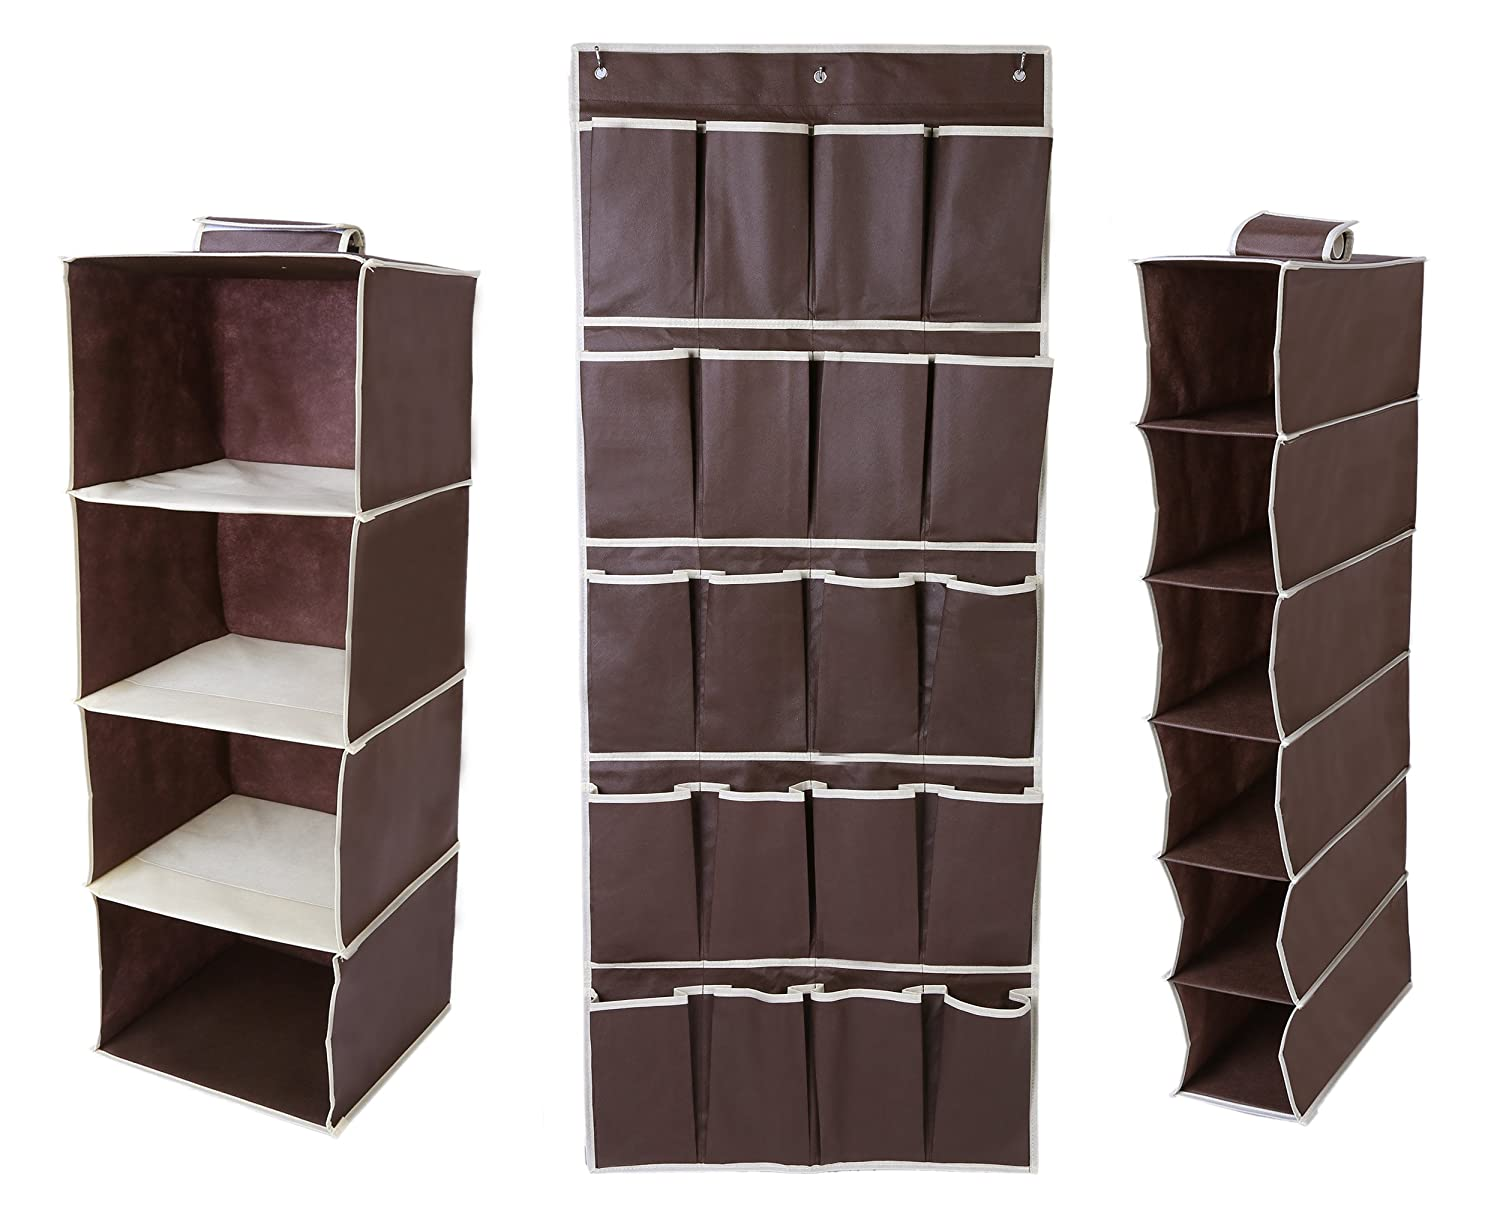 Amazon.com: Juvale Hanging Closet Organizer Set - Includes Hanging 4 ...